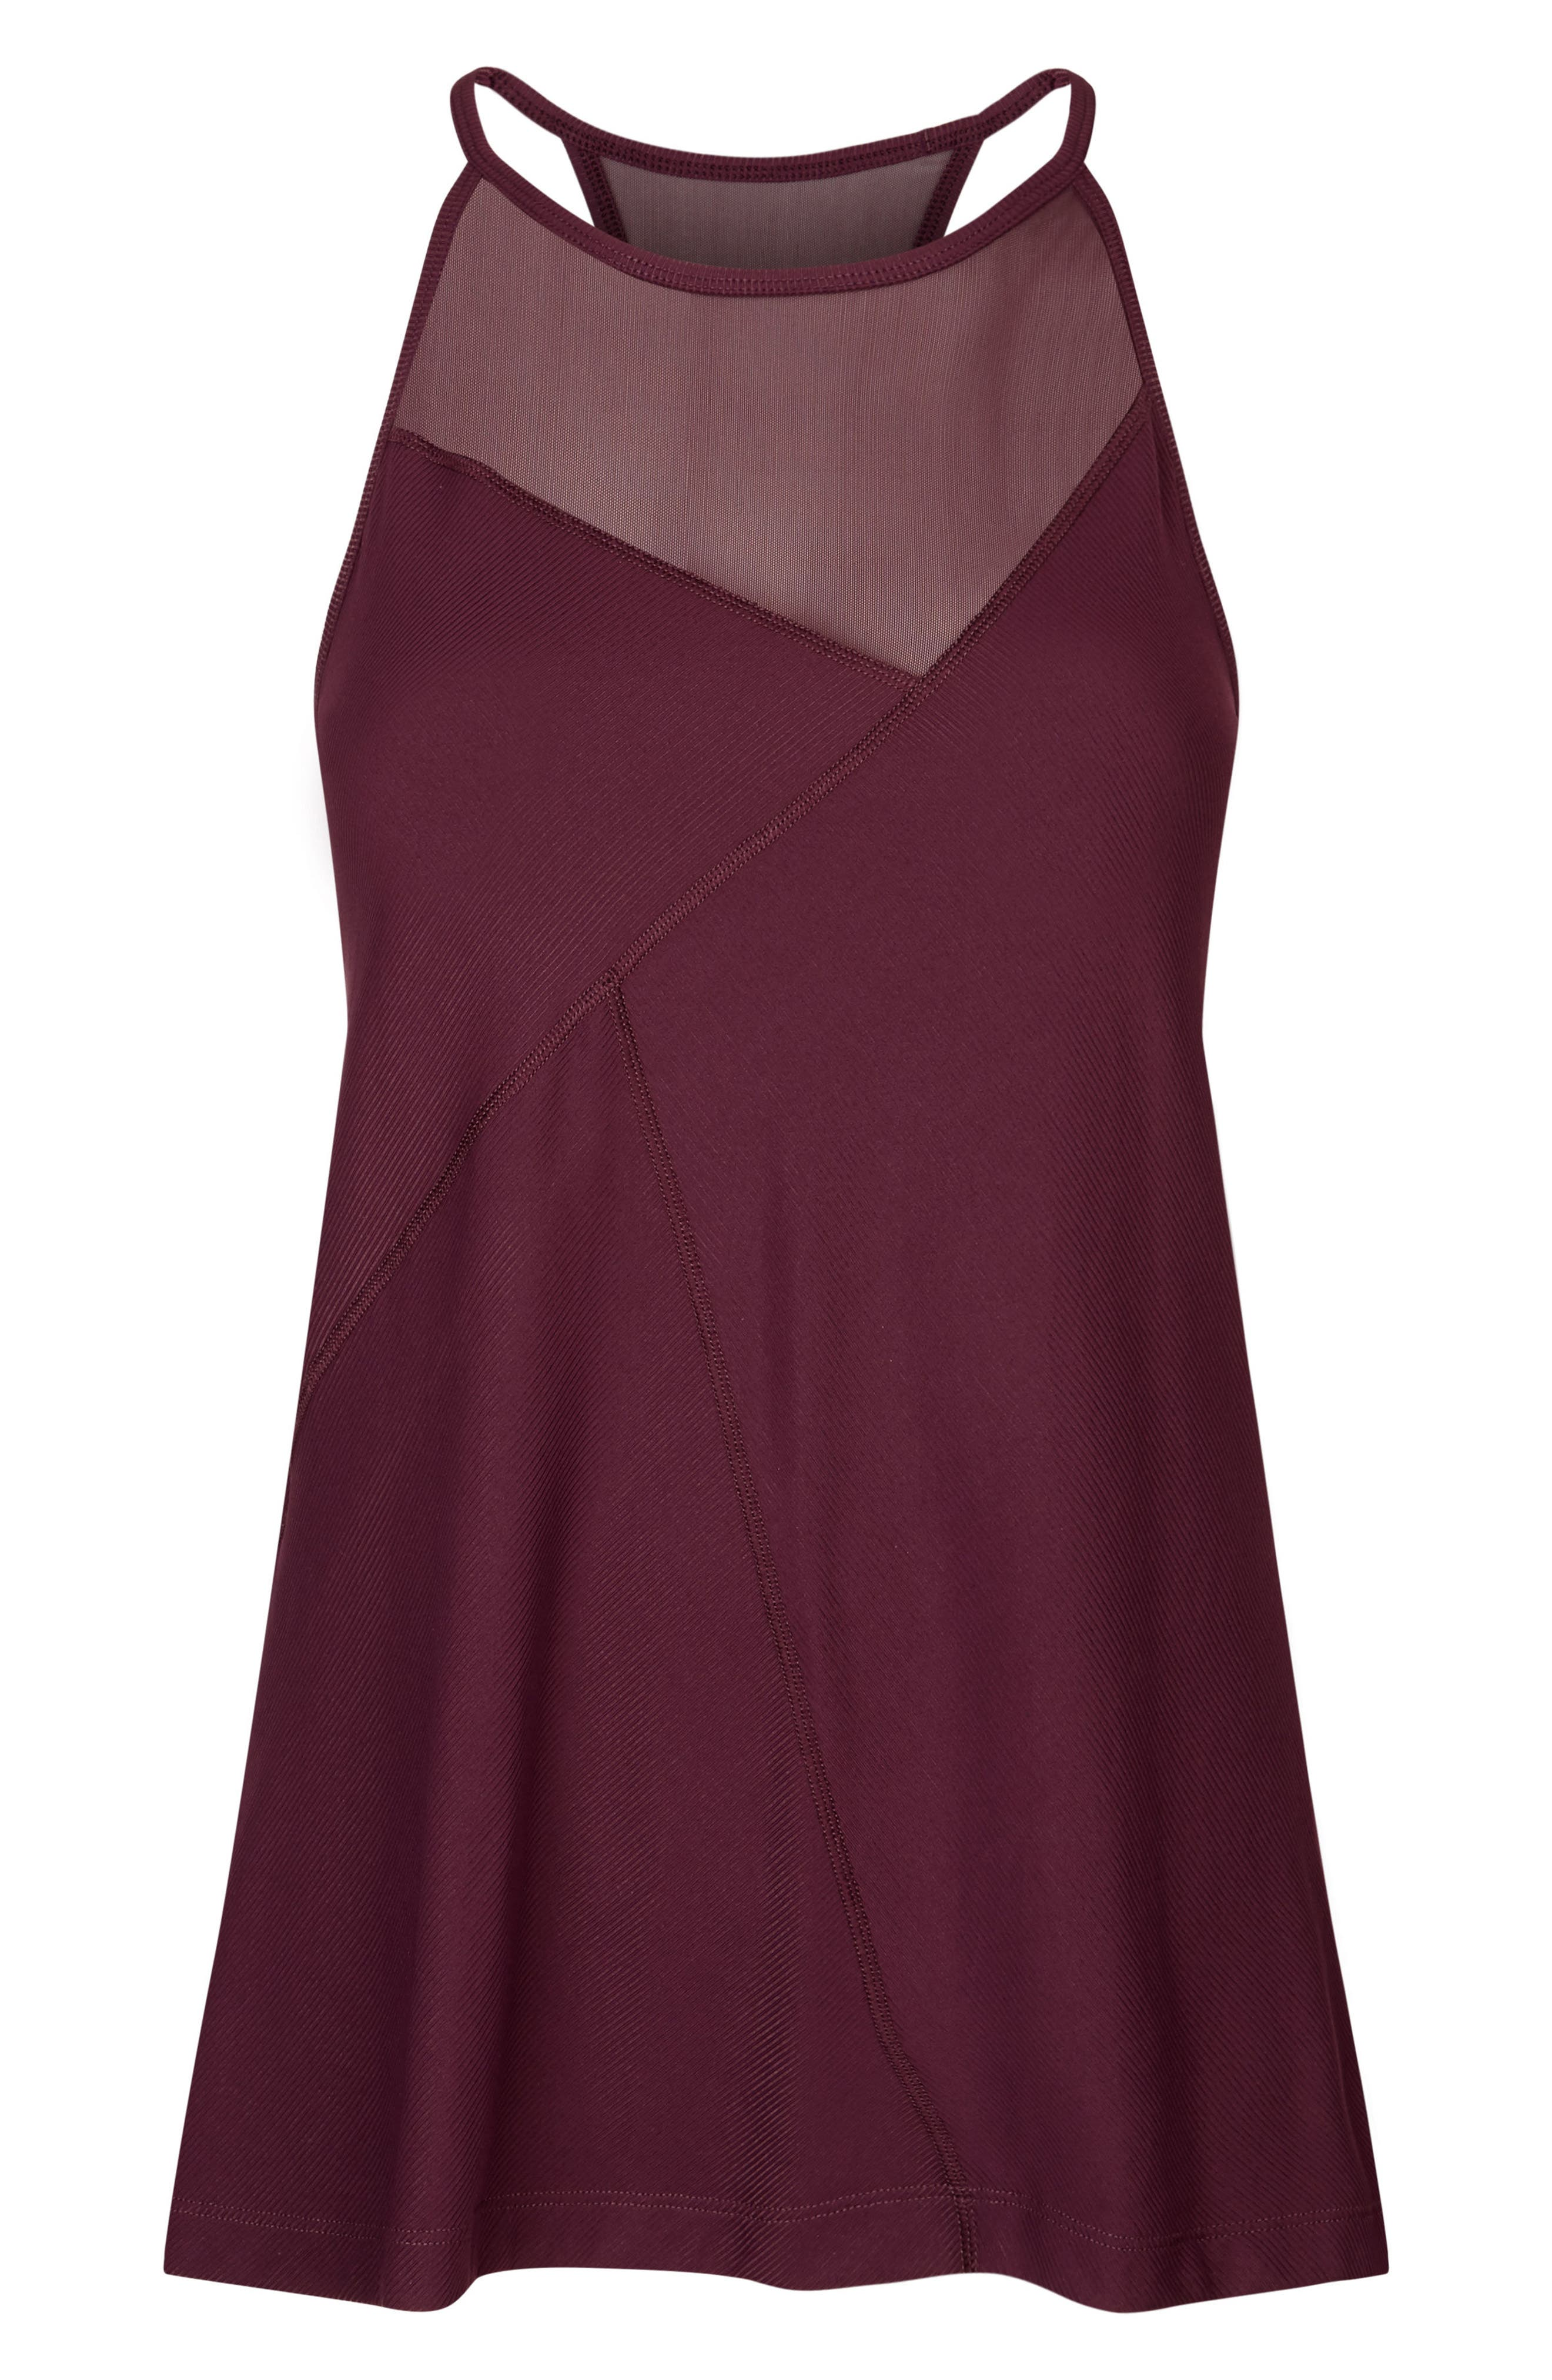 Chakra Ribbed Tank,                             Alternate thumbnail 6, color,                             Oxblood